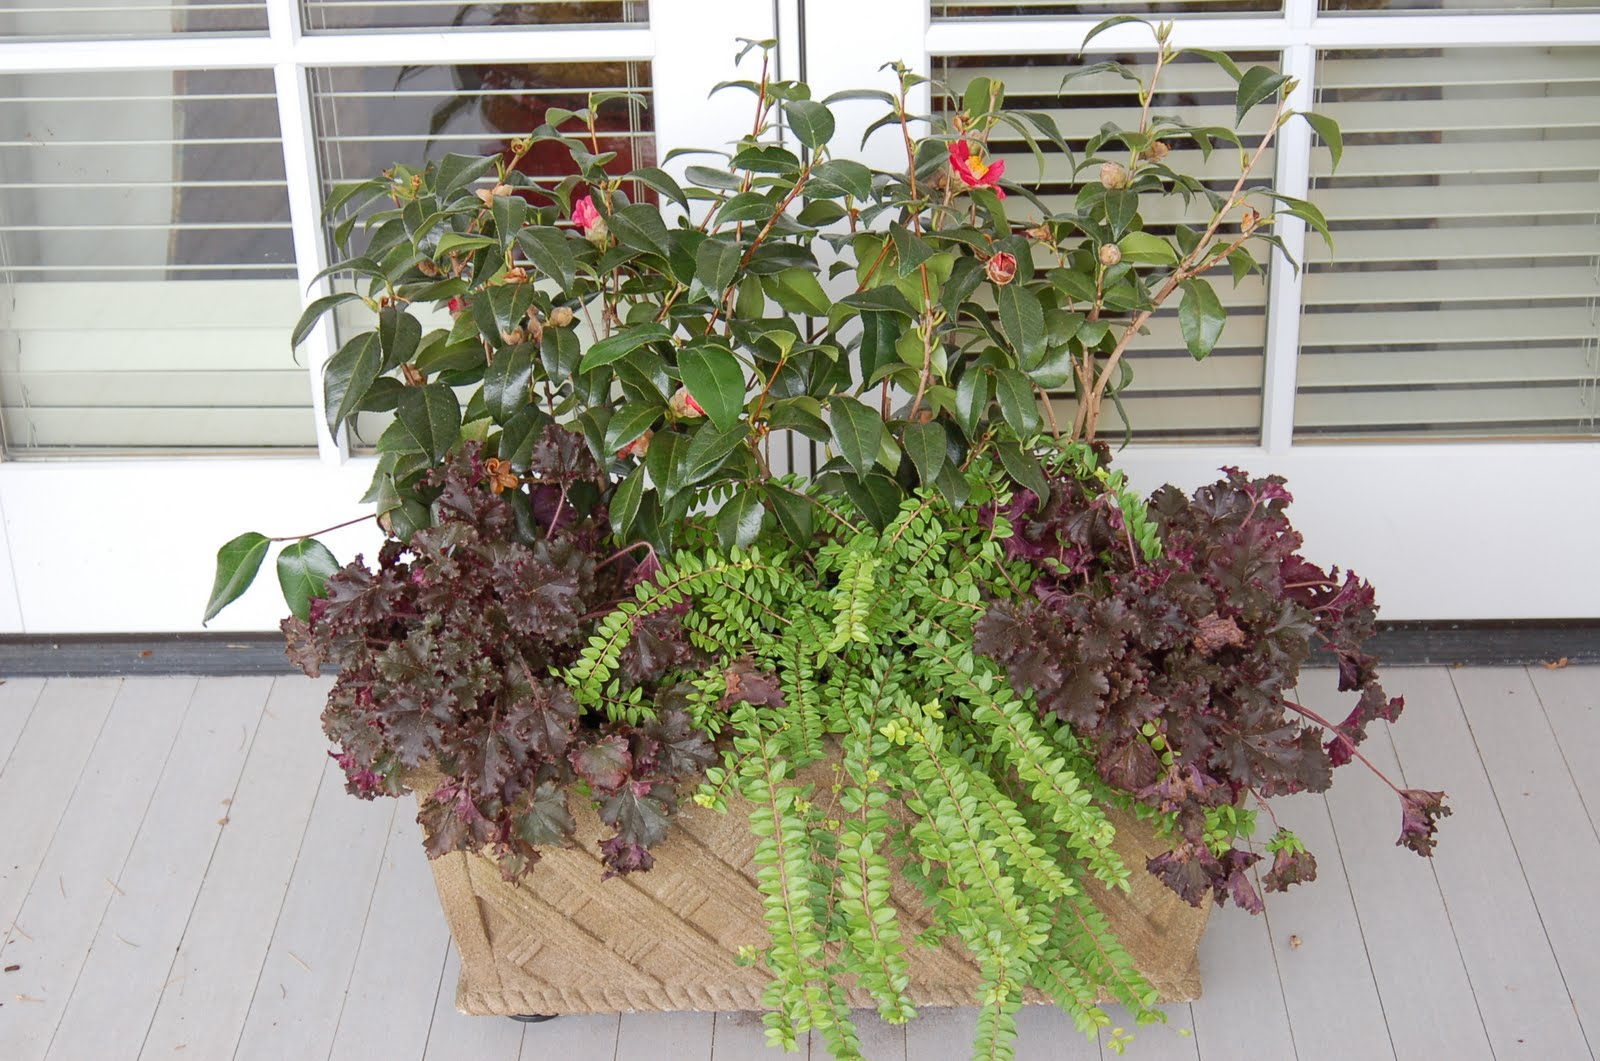 bwisegardening day 2 a shade loving option for winter containers